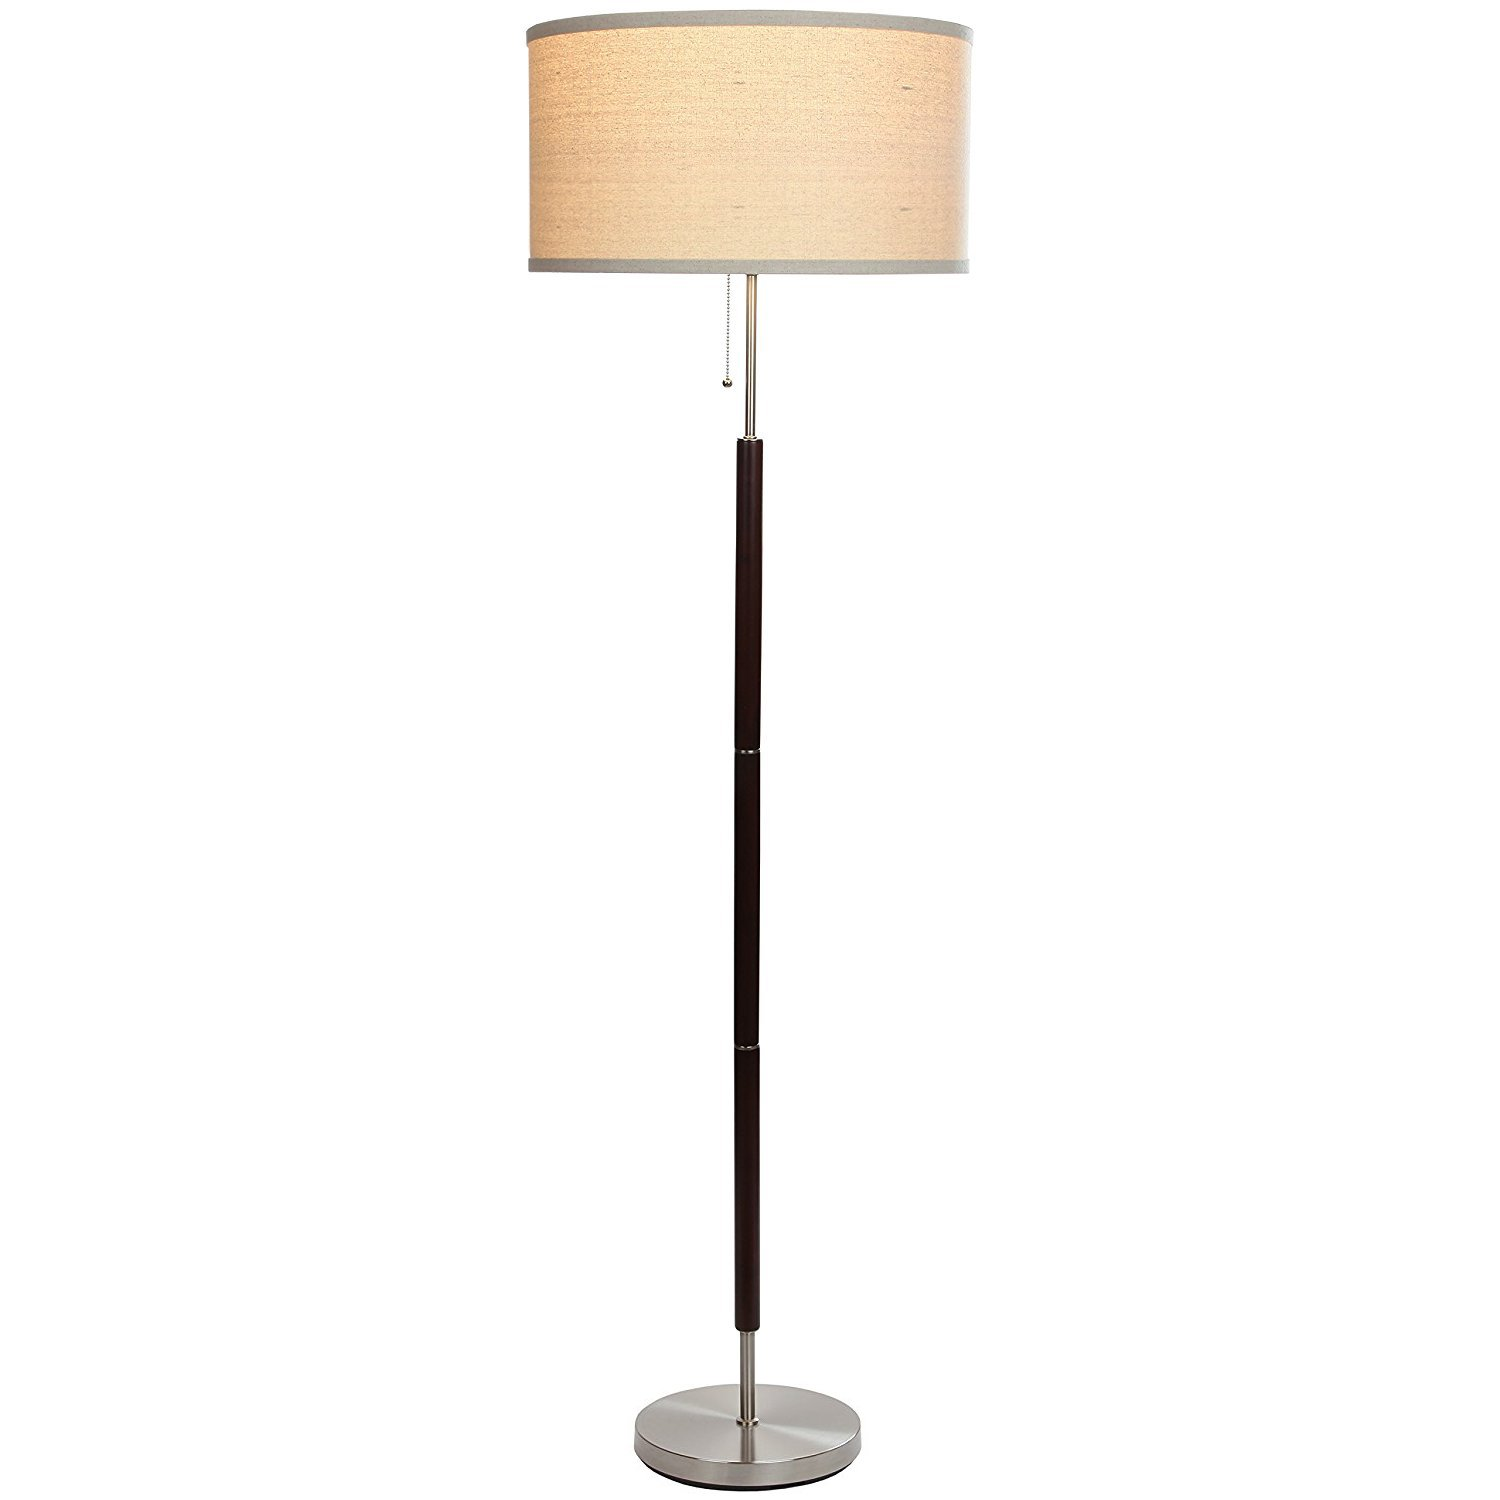 Brightech Carter LED Floor Lamp Classy Vintage Drum Shade Lamp  Tall Pole  Standing, Industrial